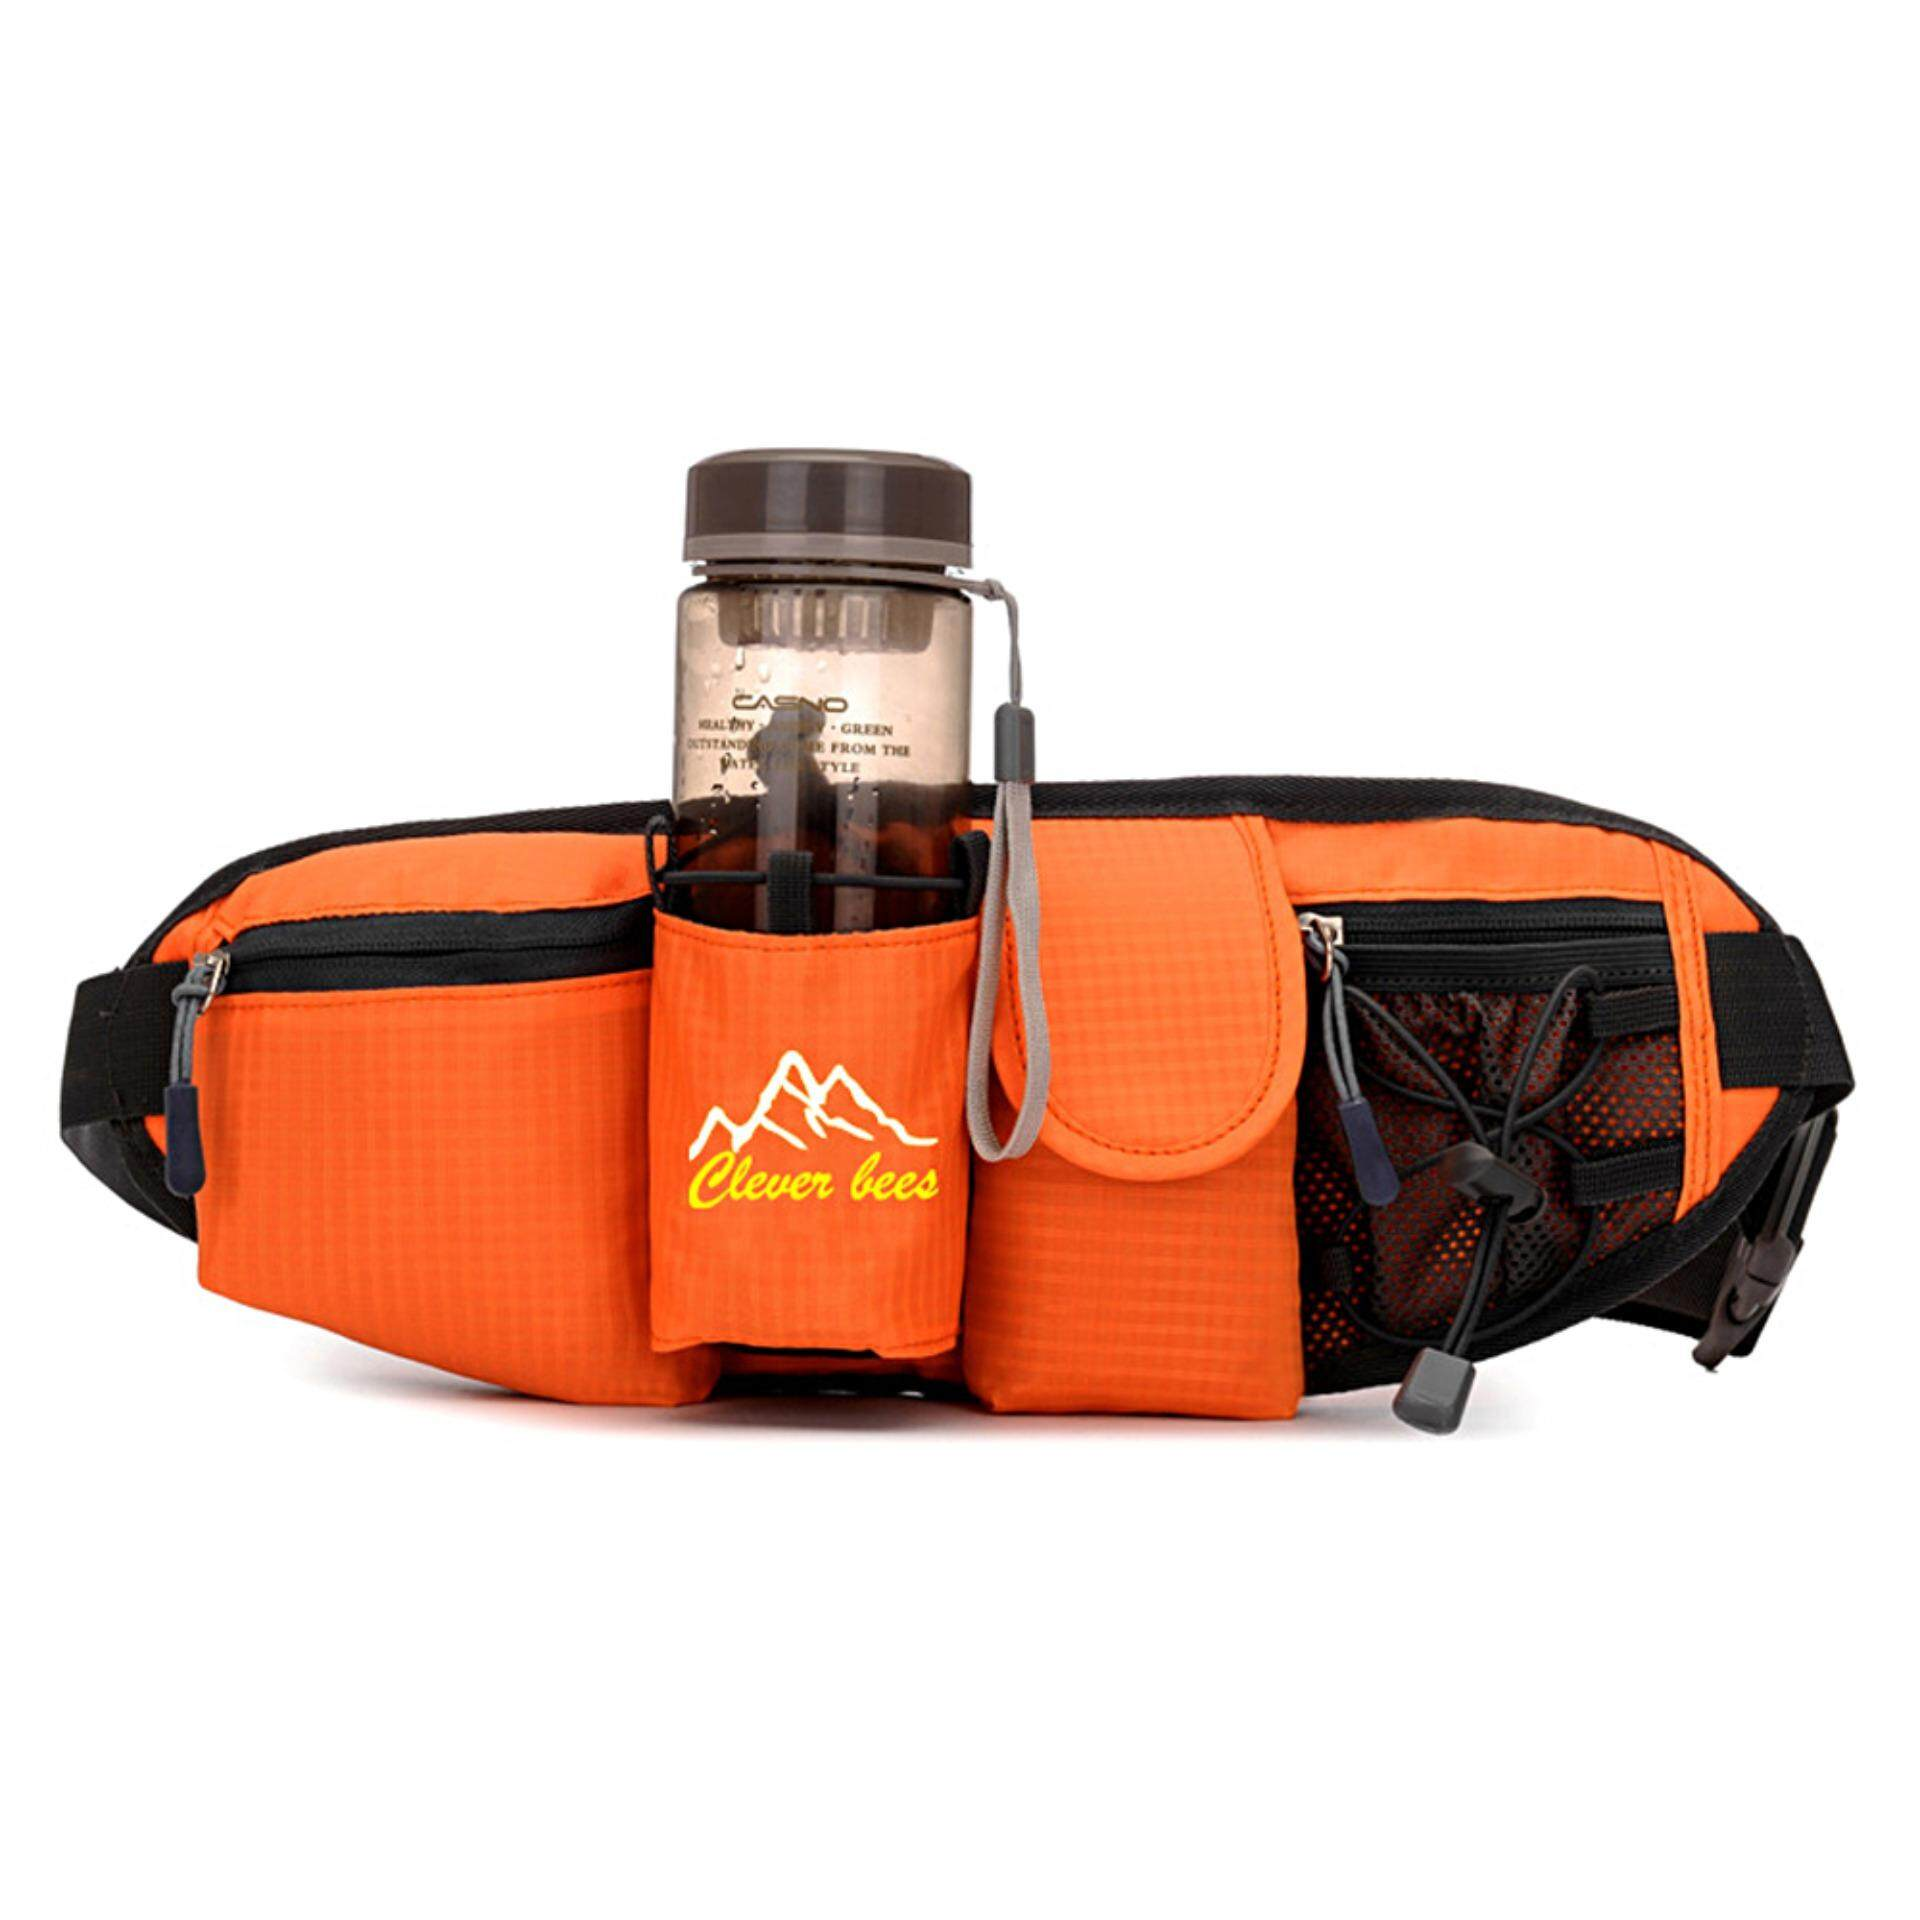 Mr. bang Outdoor Sports Waist Pack Running Bag with Water Bottle Holder for Running Hiking